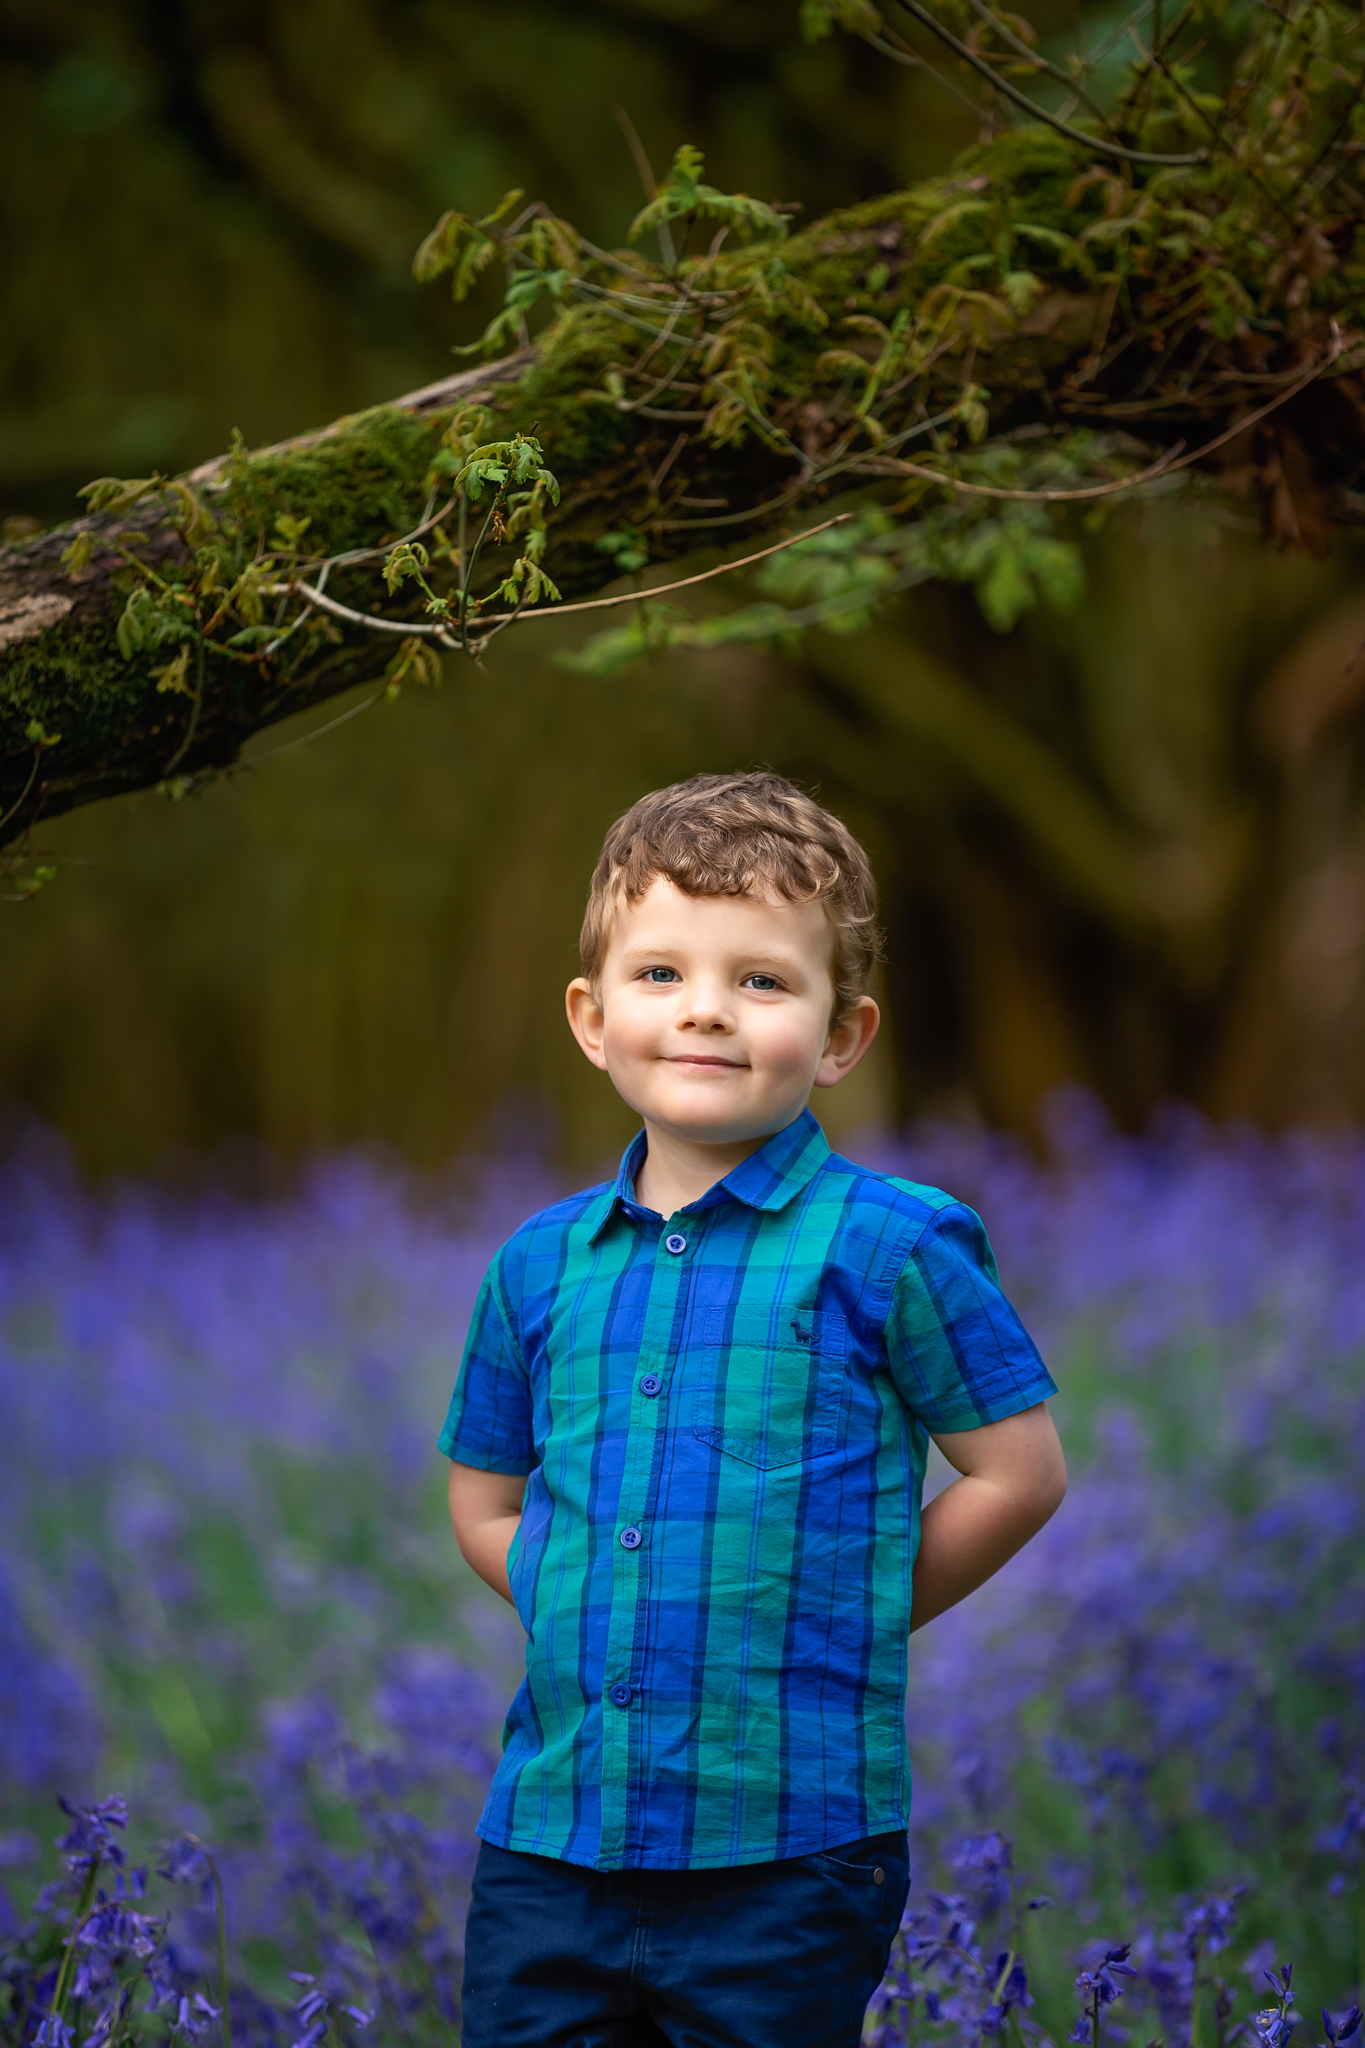 Child photography Leeds, York, Harrogare, Bradford: cute little boy during bluebell session in Leeds, Yorkshire